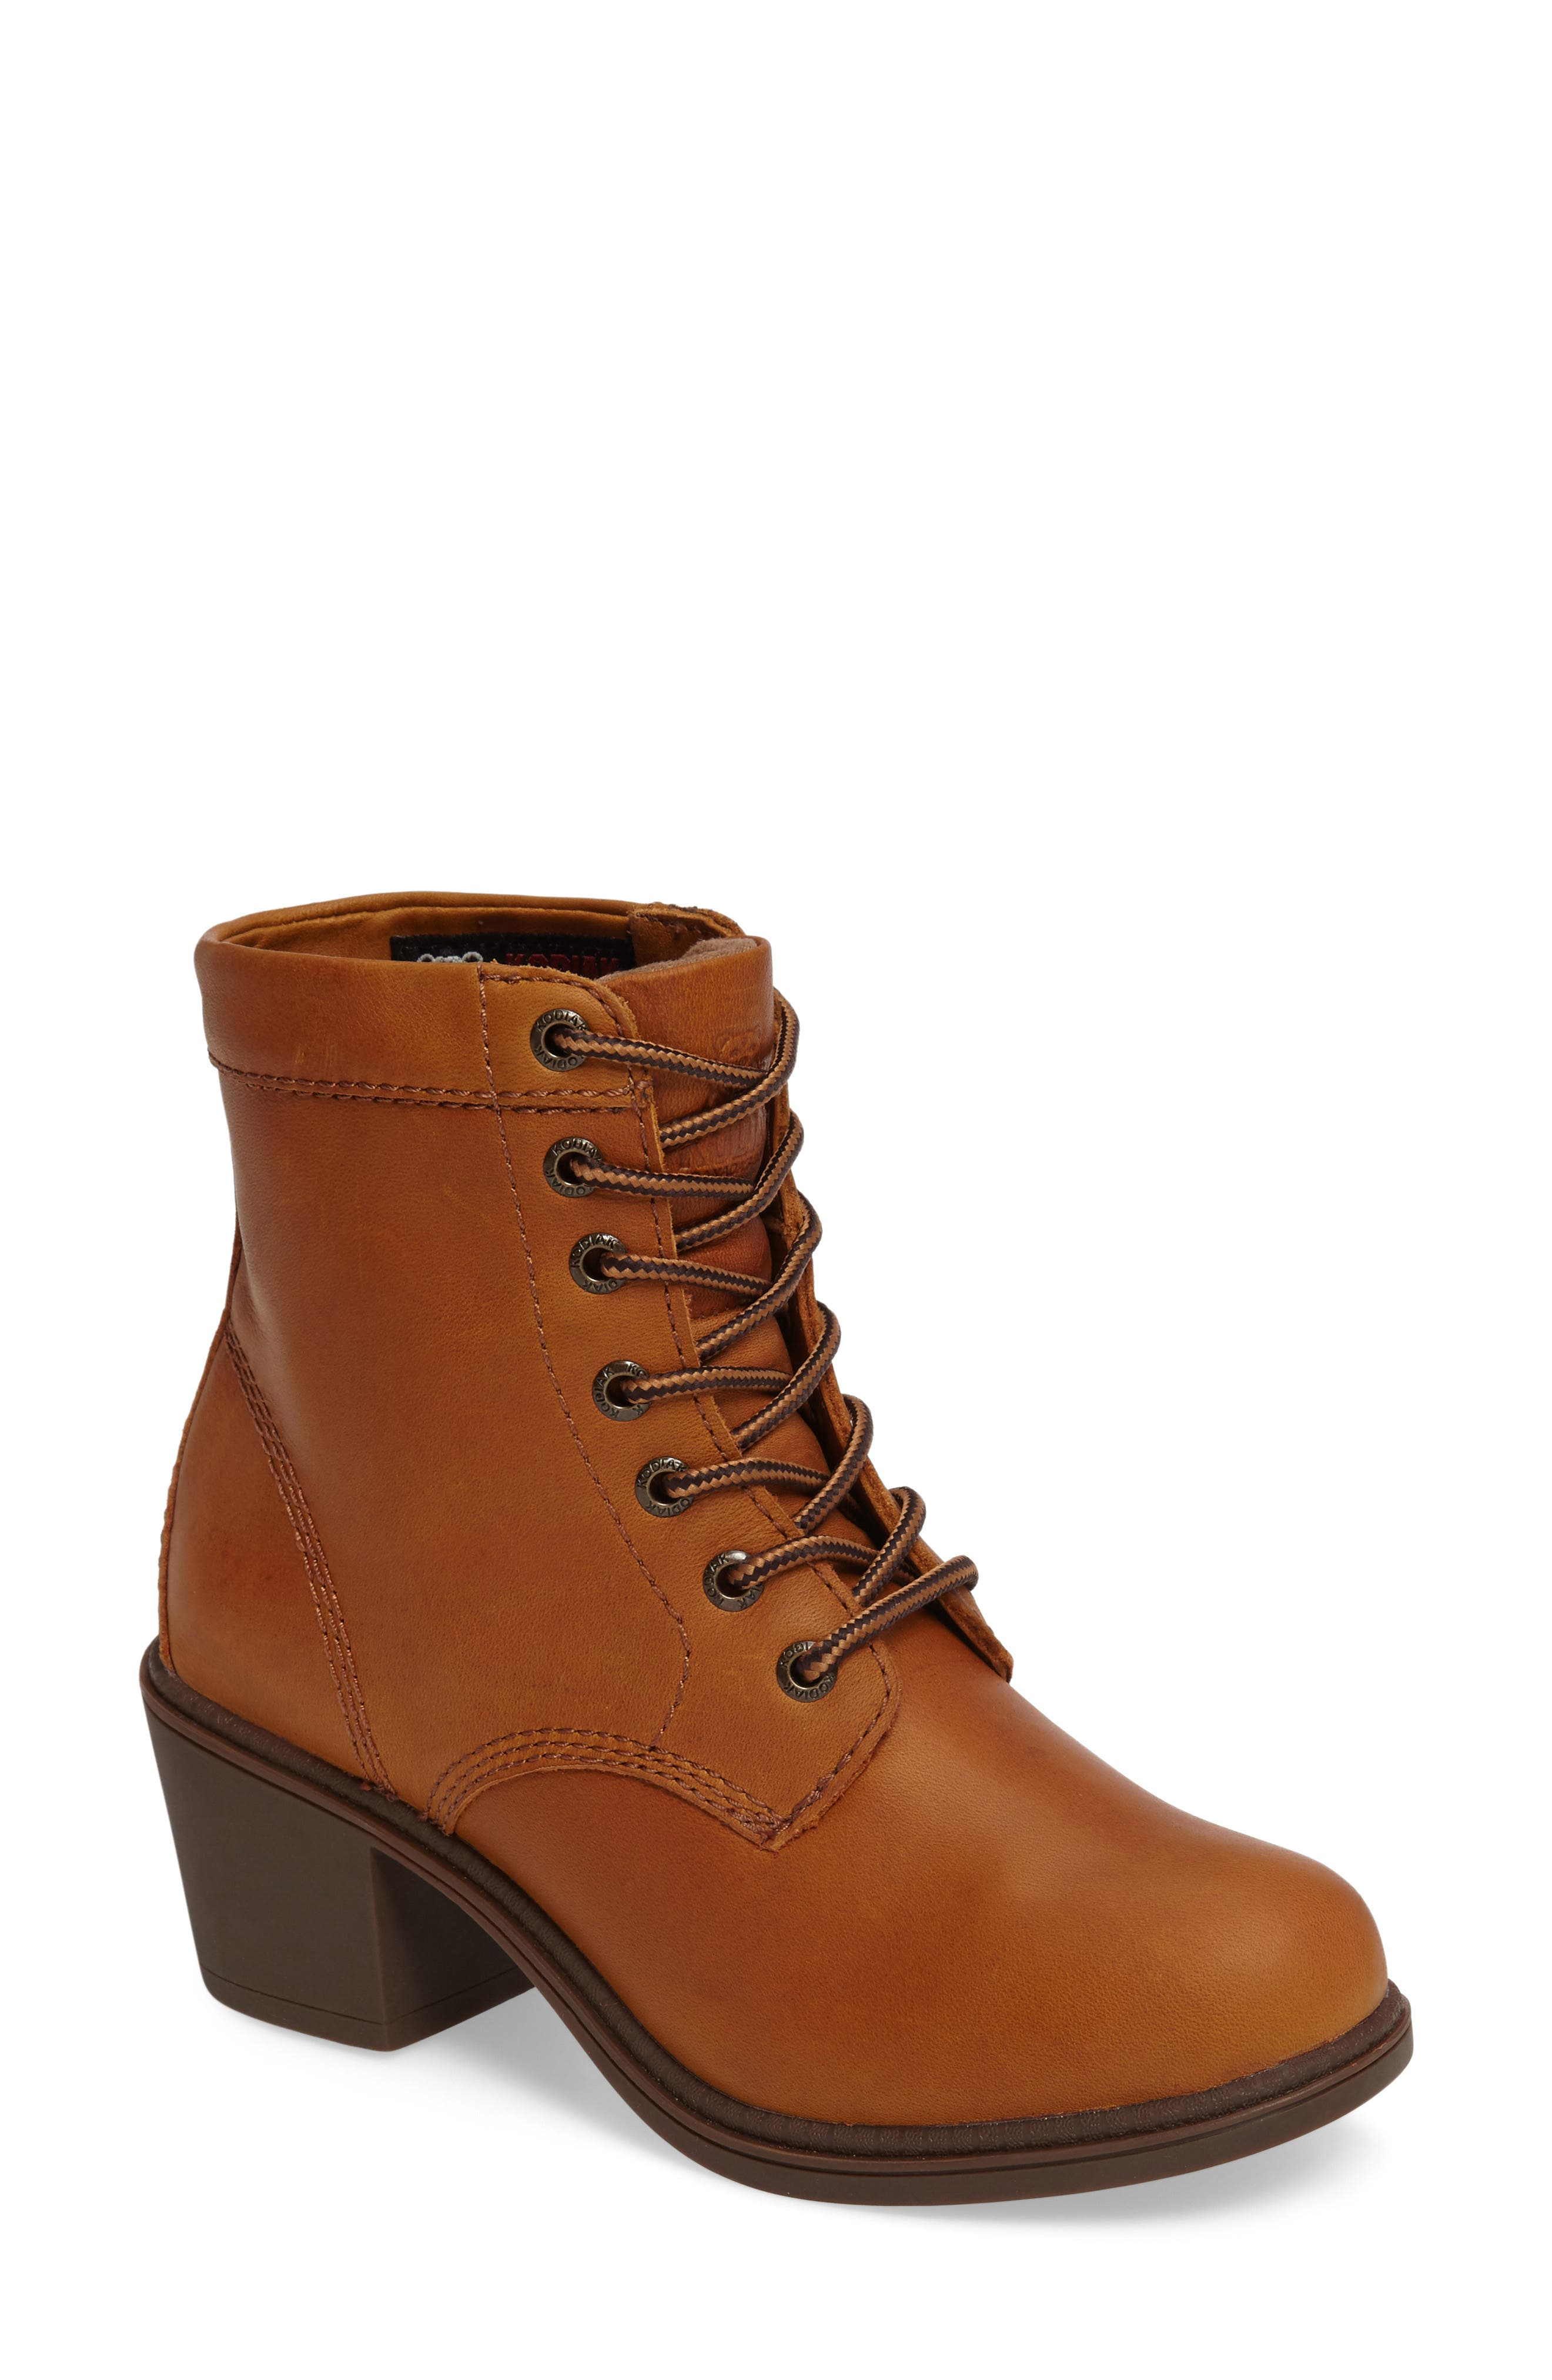 Claire Waterproof Bootie,                         Main,                         color, Caramel Leather